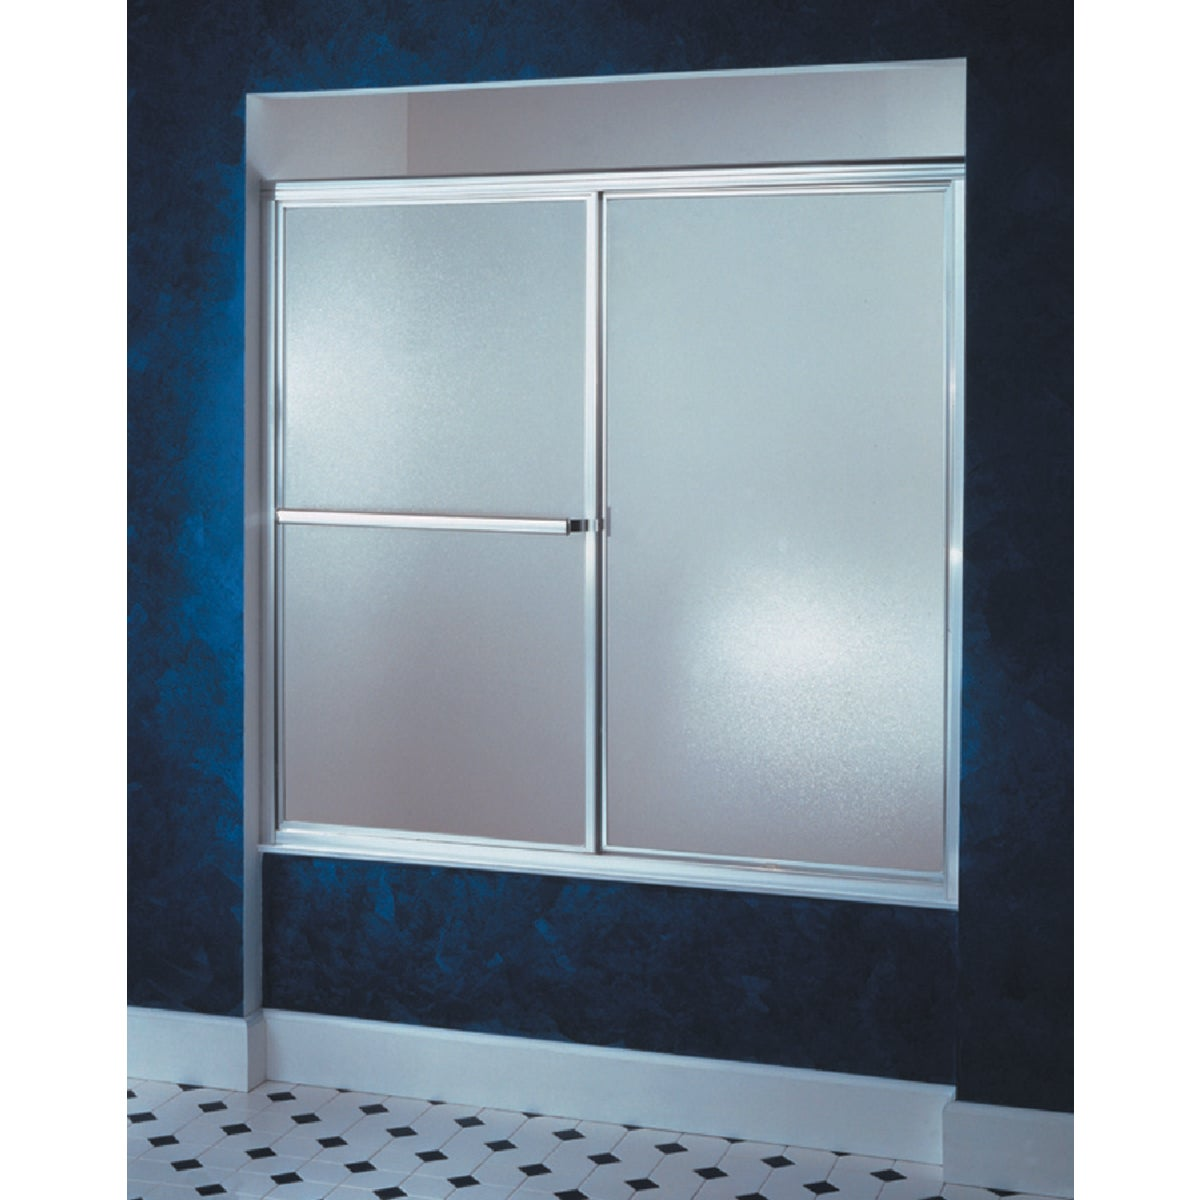 SILVER BY-PASS TUB DOOR - 5906-59S by Sterling Doors